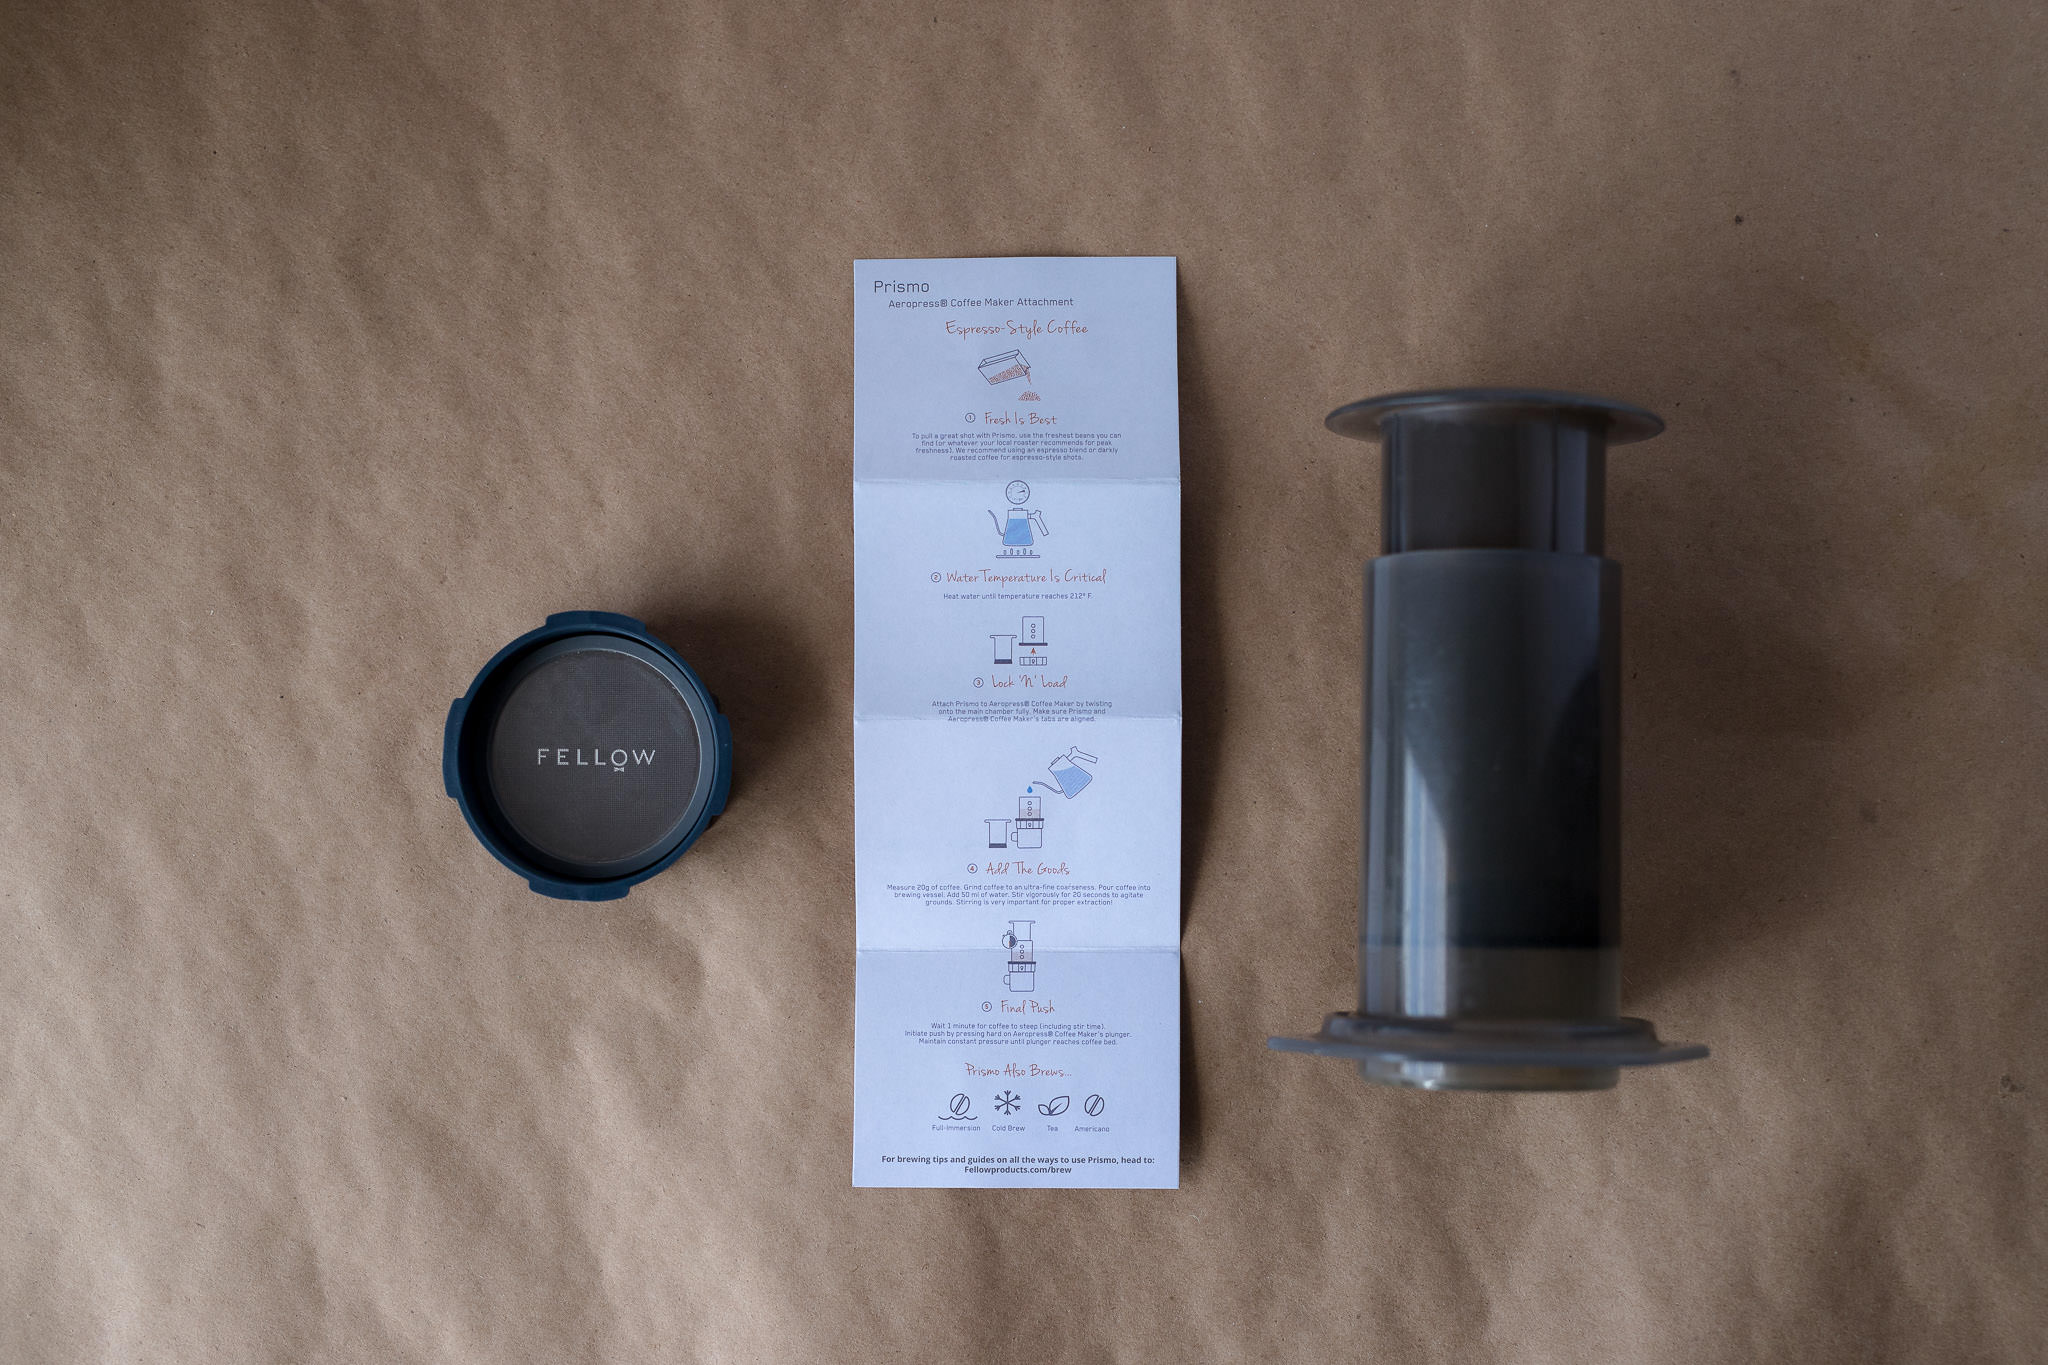 Aeropress and Fellow Prismo with included espresso brew guide